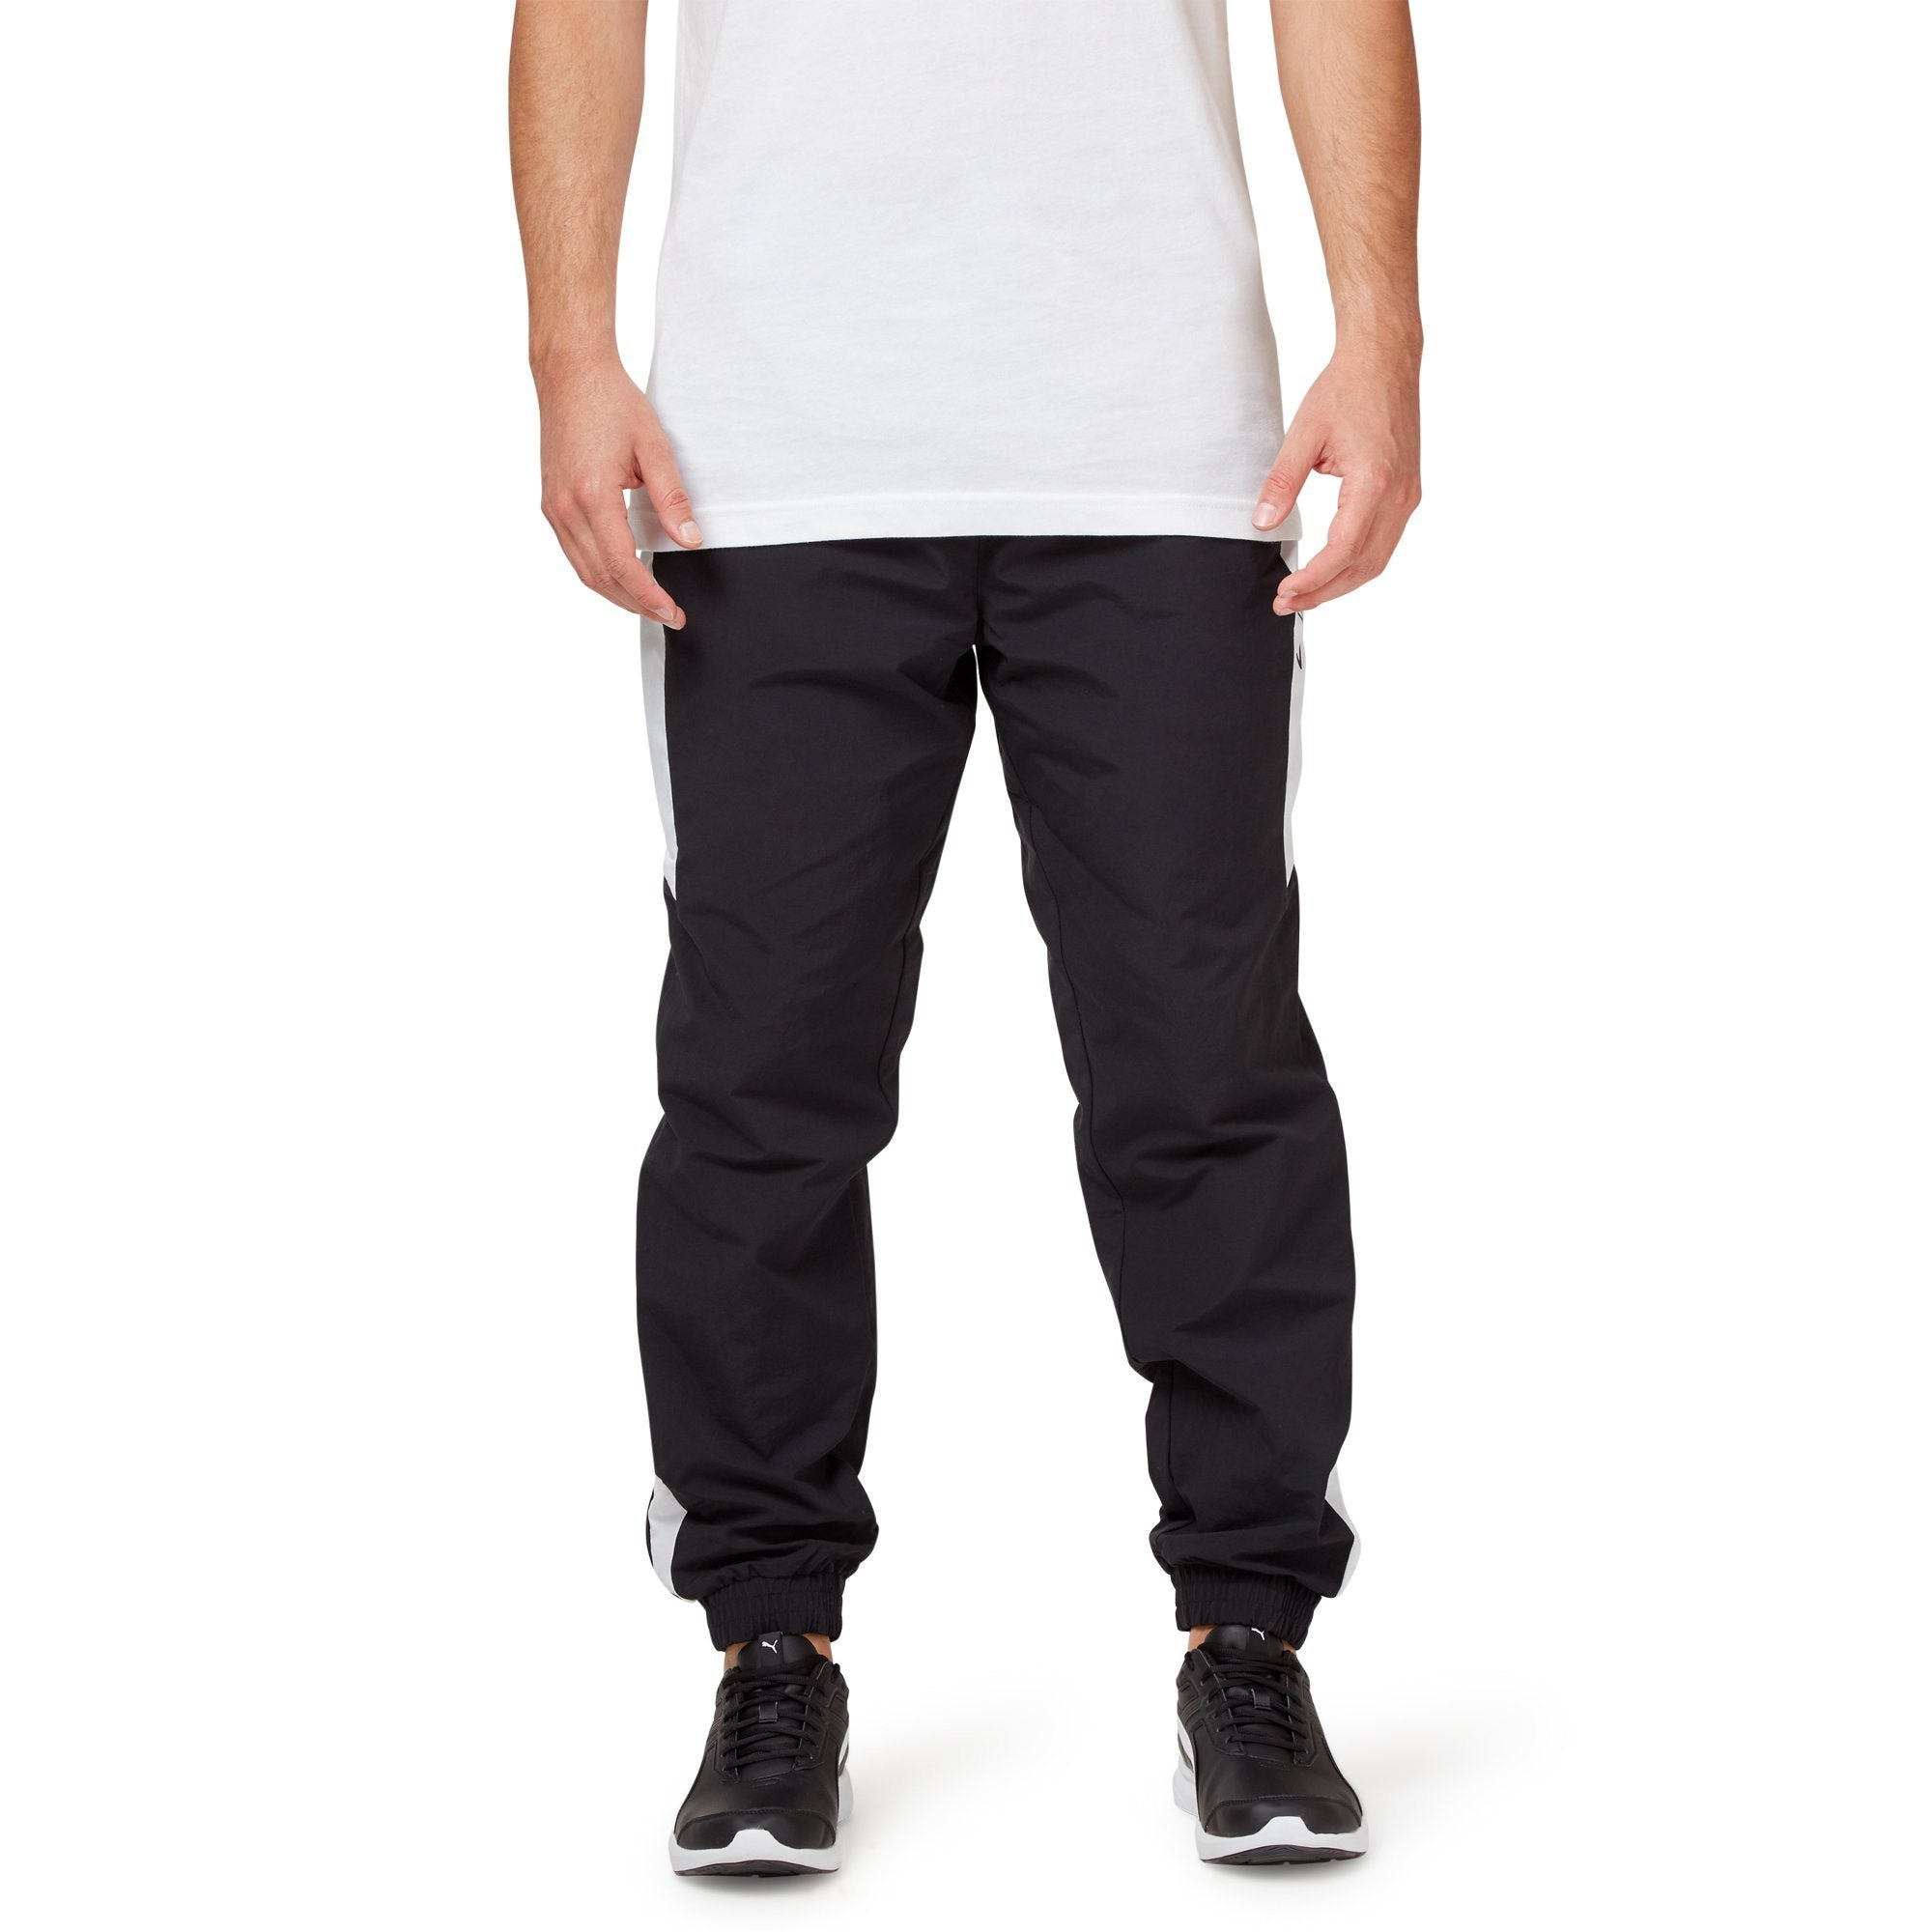 Puma Men's Homage to Archive Trackpants - Black Apparel Puma  (2122605428795)